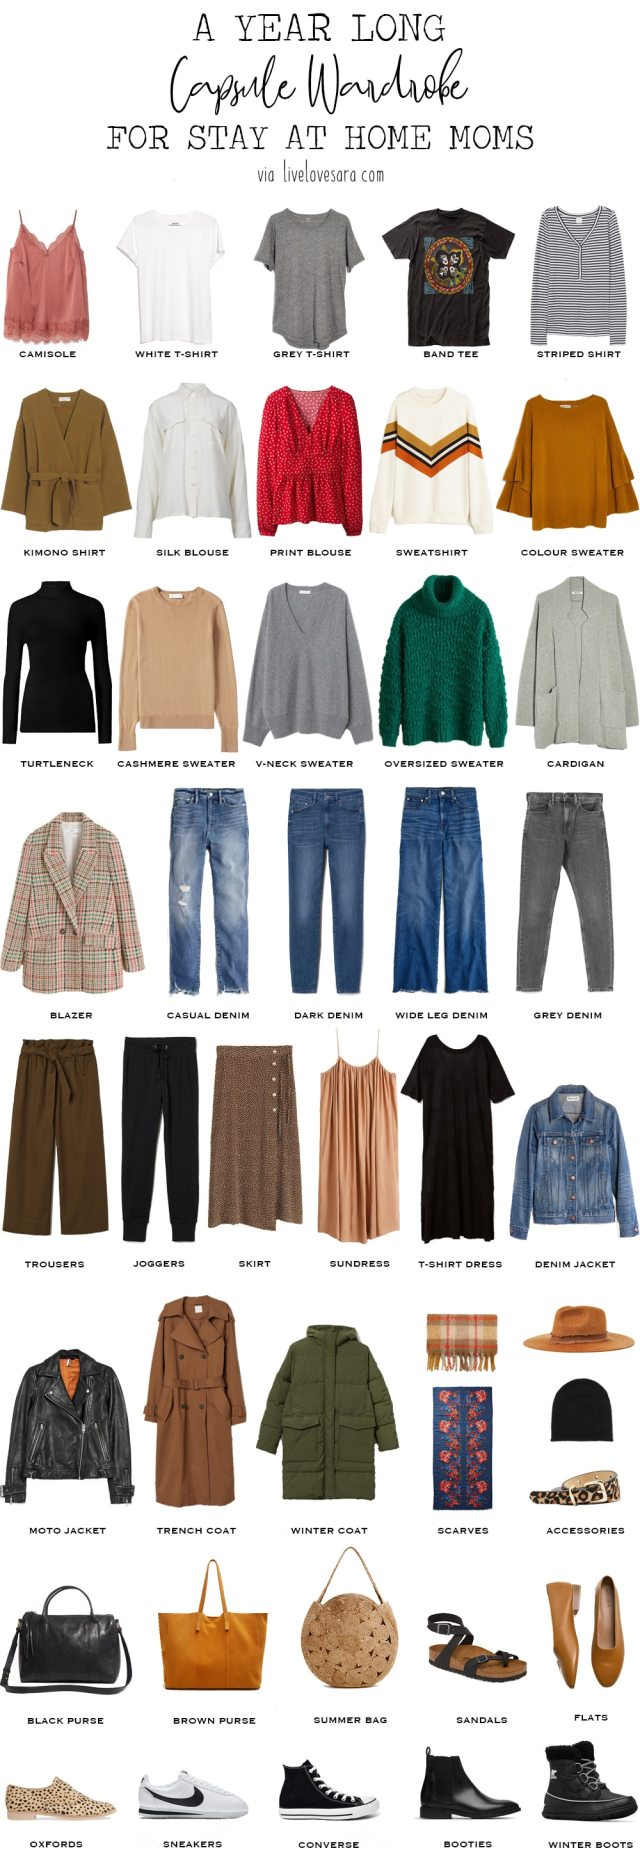 Do you need some help downsizing your wardrobe. Are you a stay at home mom who is looking to have a stylish, casual, and easy to wear wardrobe that is and looks effortless? Check out my Year long capsule wardrobe for stay at home moms | Mom style | #capsulewardrobe #sustainablefashion #slowfashion #capslook #minimalliving #sustainableliving #lessismore #styleblogger #slowliving #minimaliststyle #motherhood #wearyourcloset